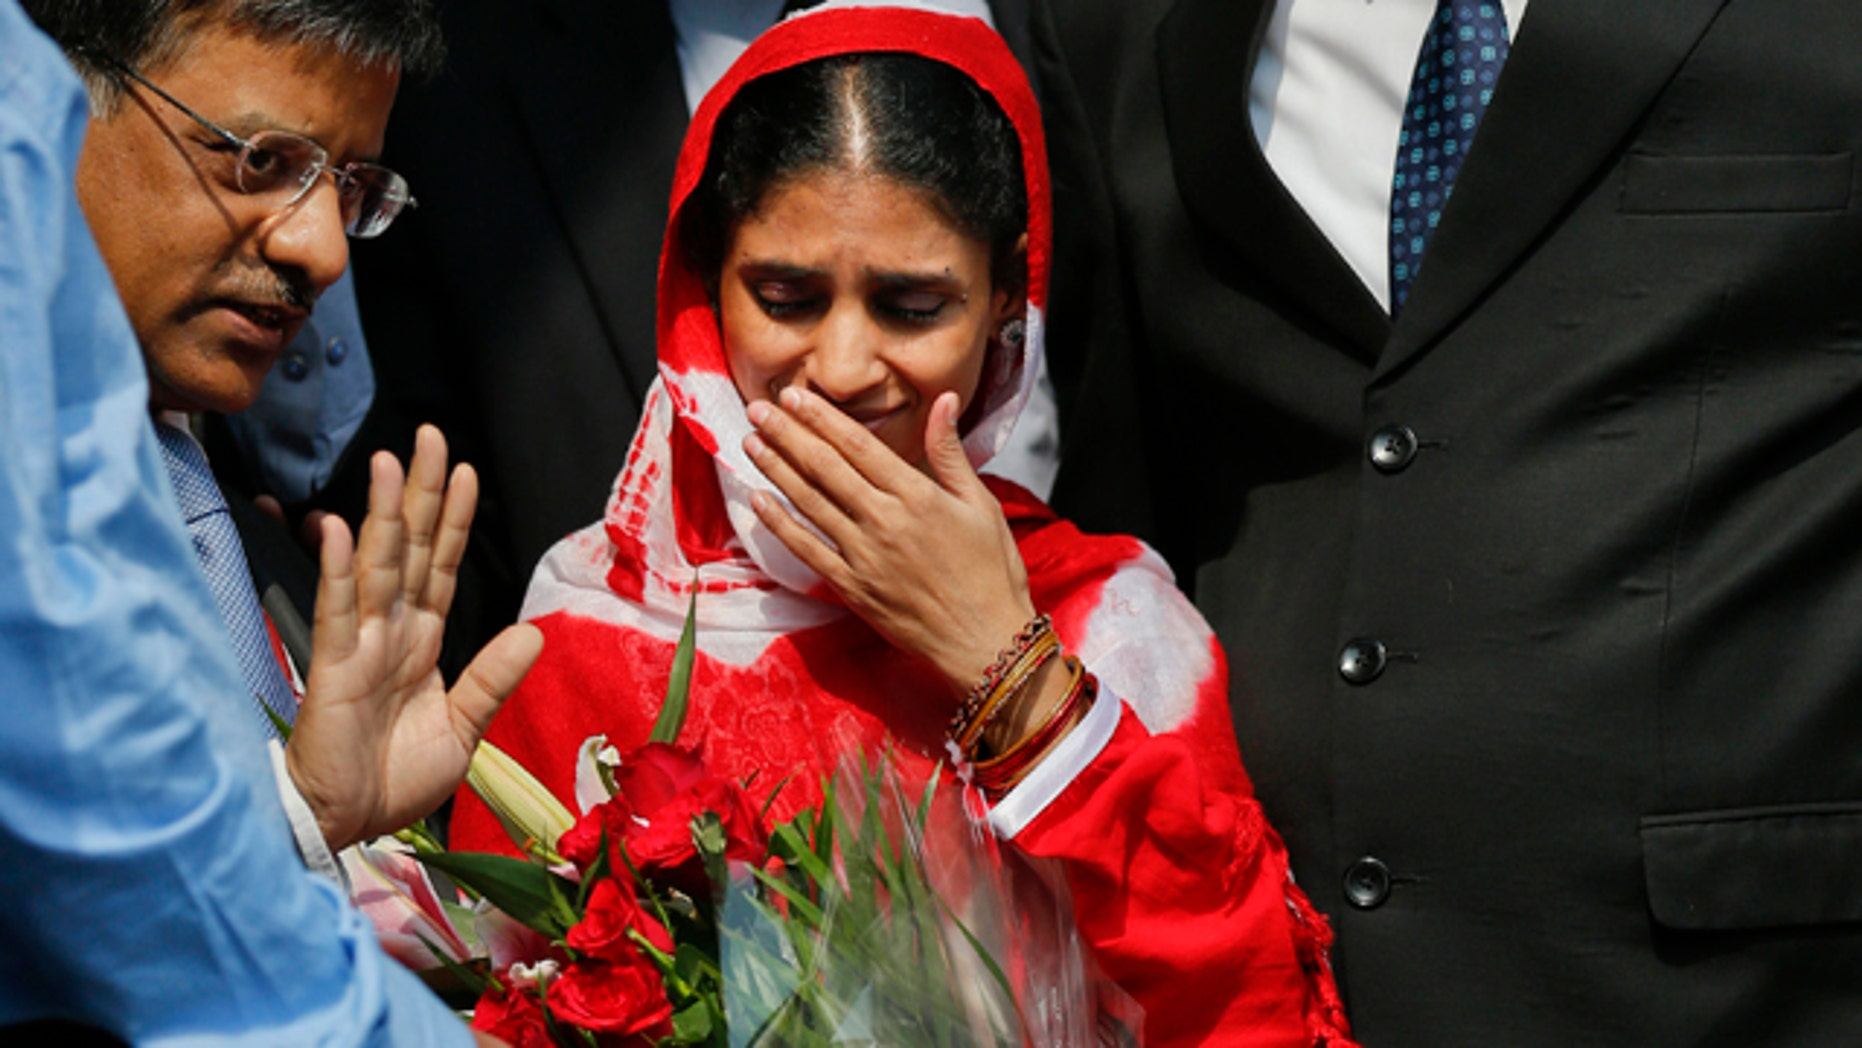 Oct. 26, 2015: Geeta, 23, center, a deaf and mute Indian woman who accidentally strayed into Pakistan as a child 12 years ago, arrives at the airport in New Delhi. (AP Photo /Tsering Topgyal)